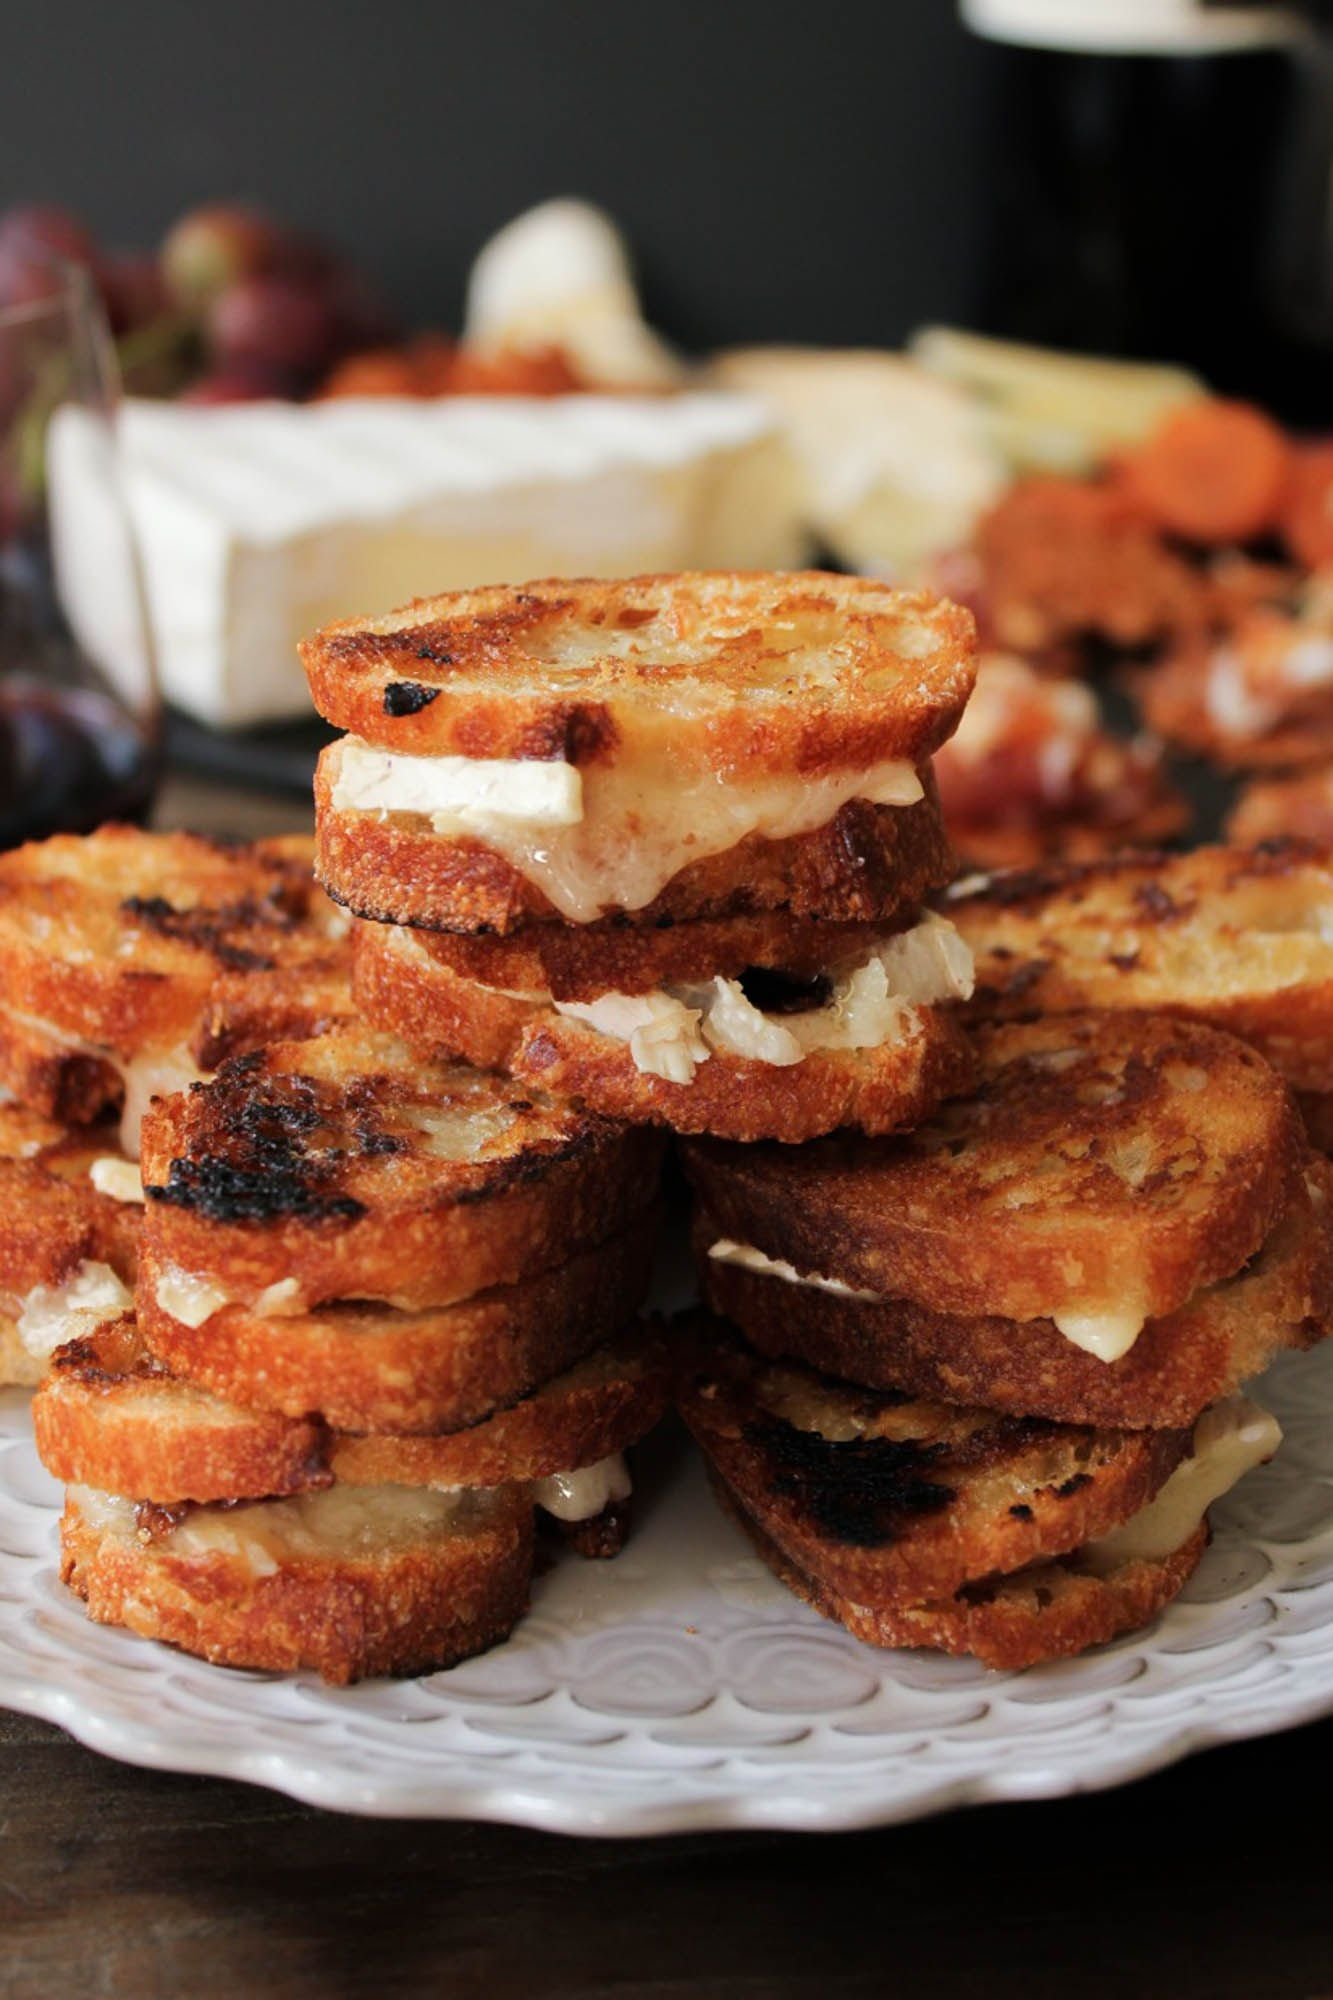 Brie-and-Candied-Bacon-Grilled-Cheese-Bites-6 (1 of 1)